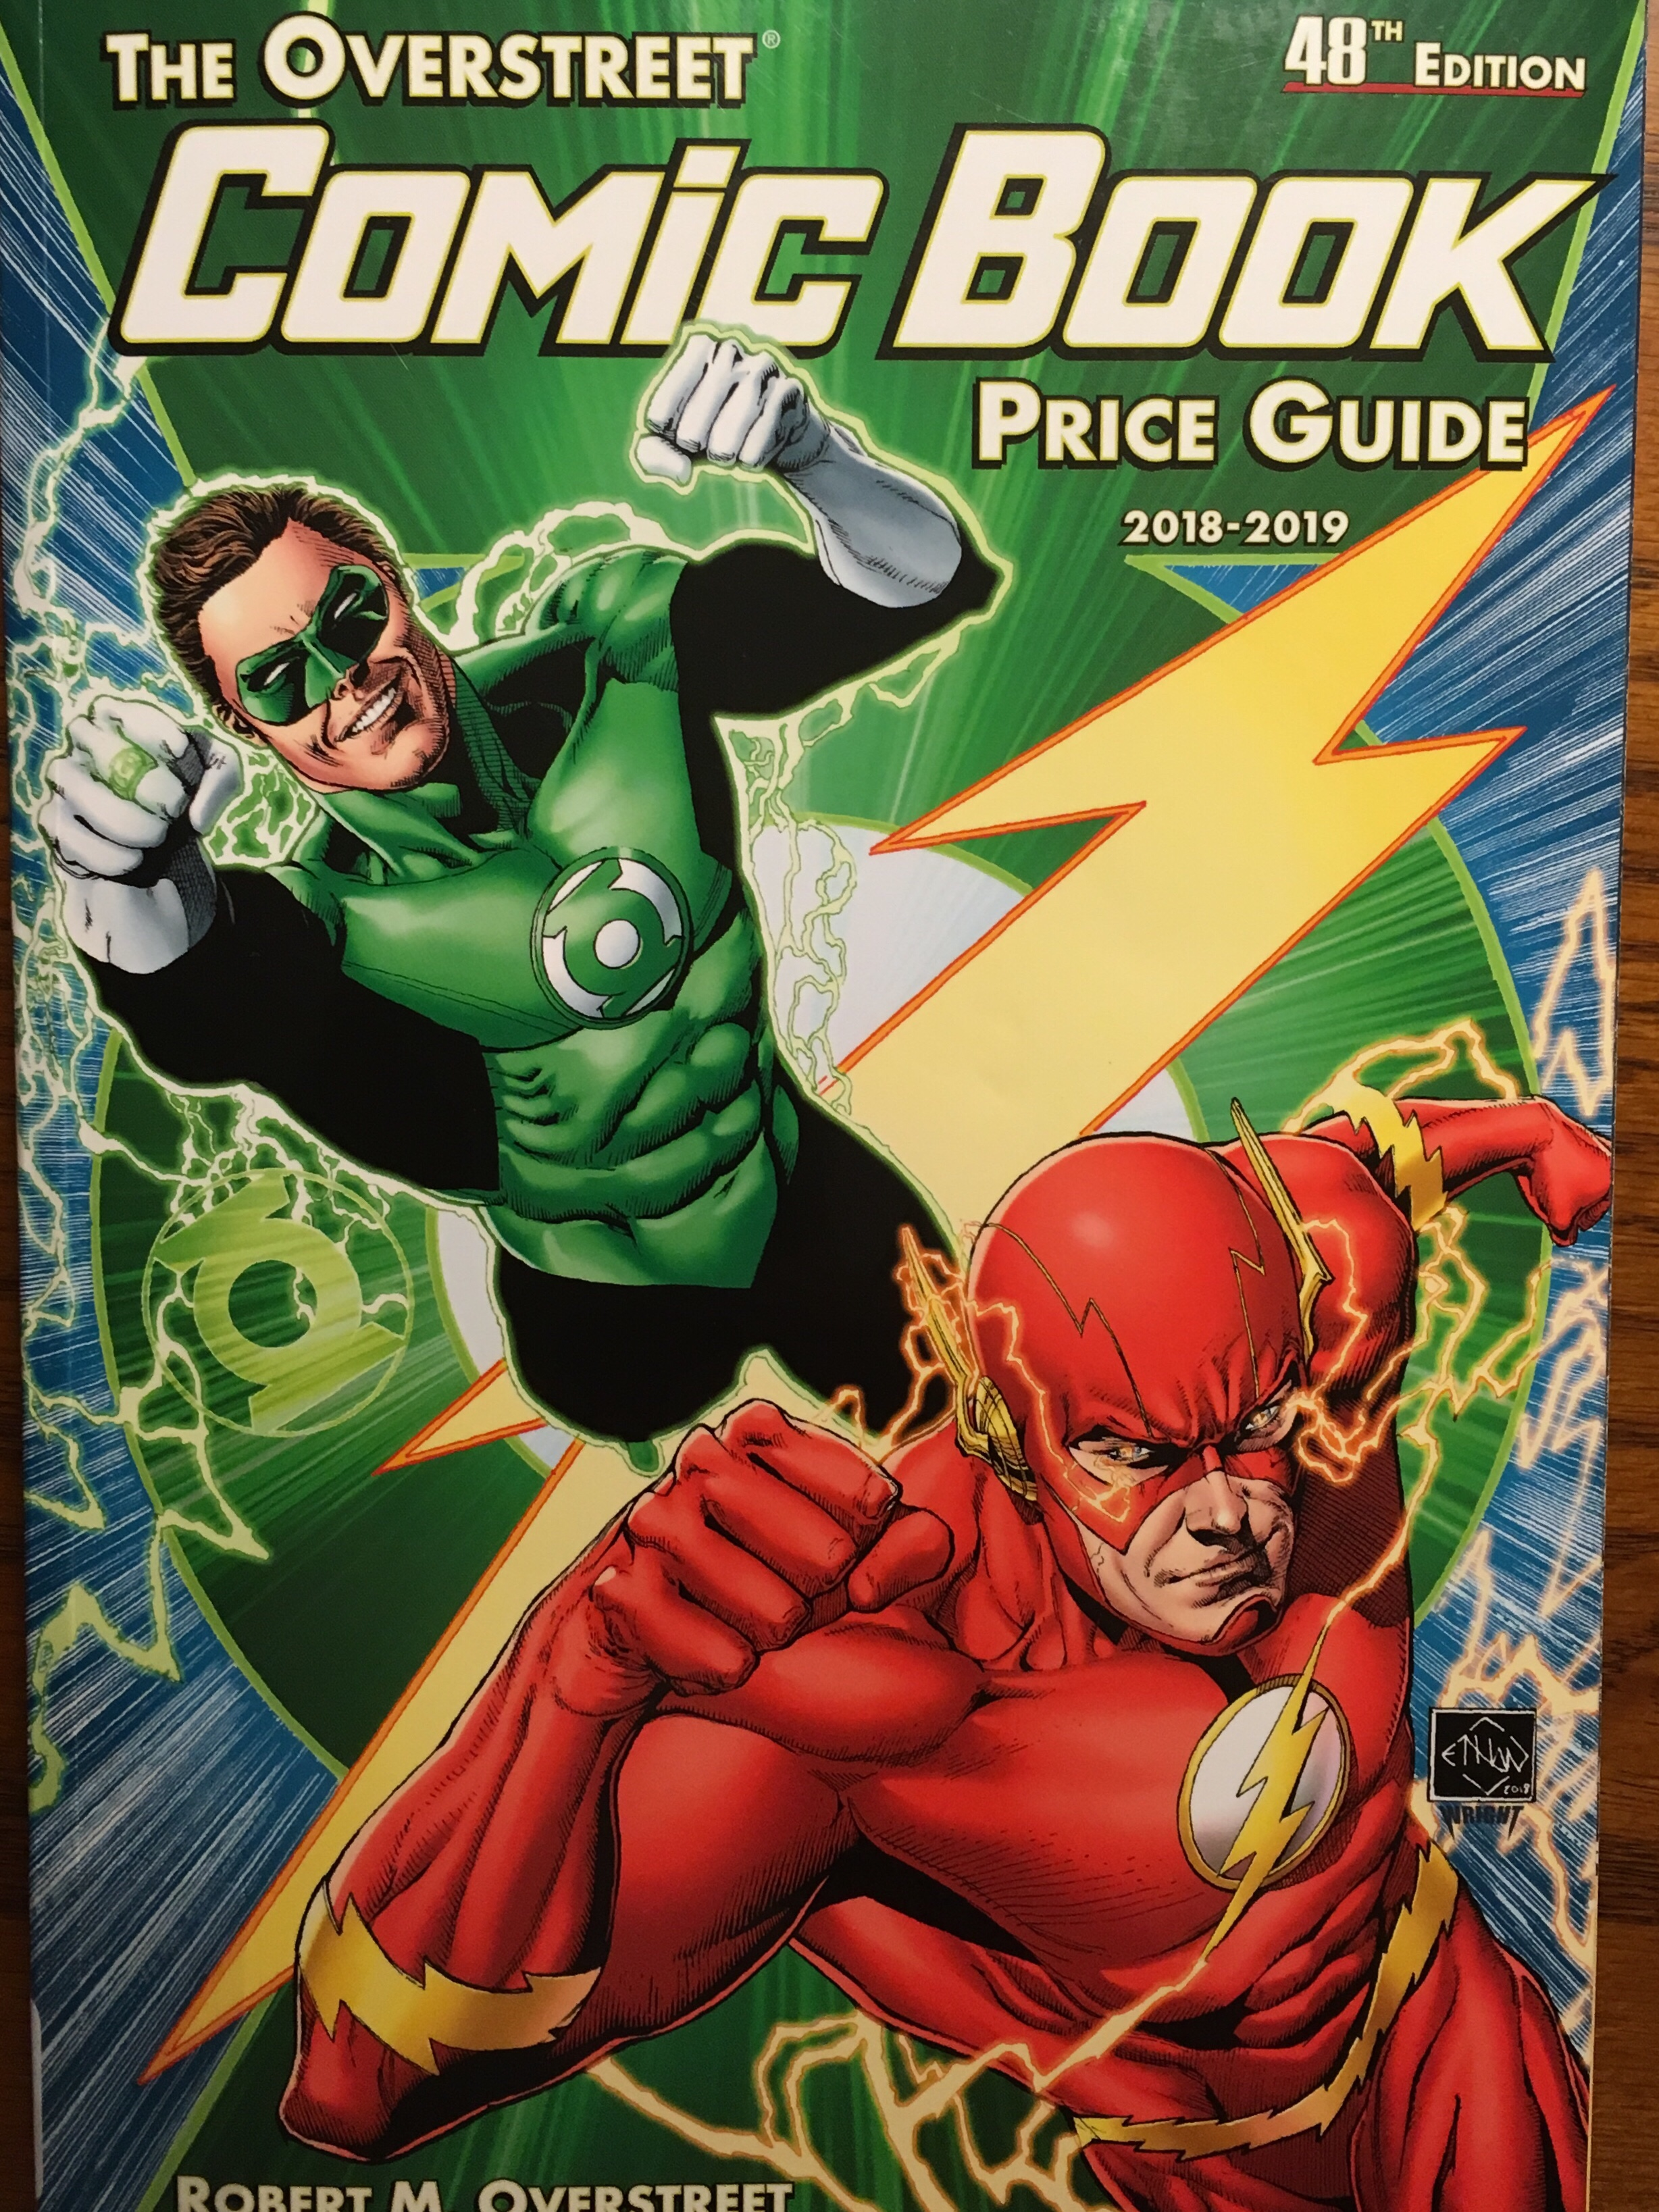 the overstreet comic book price guide comicbookcollect rh comicbookcollect com comic book price guide 2018 comic book price guide pdf